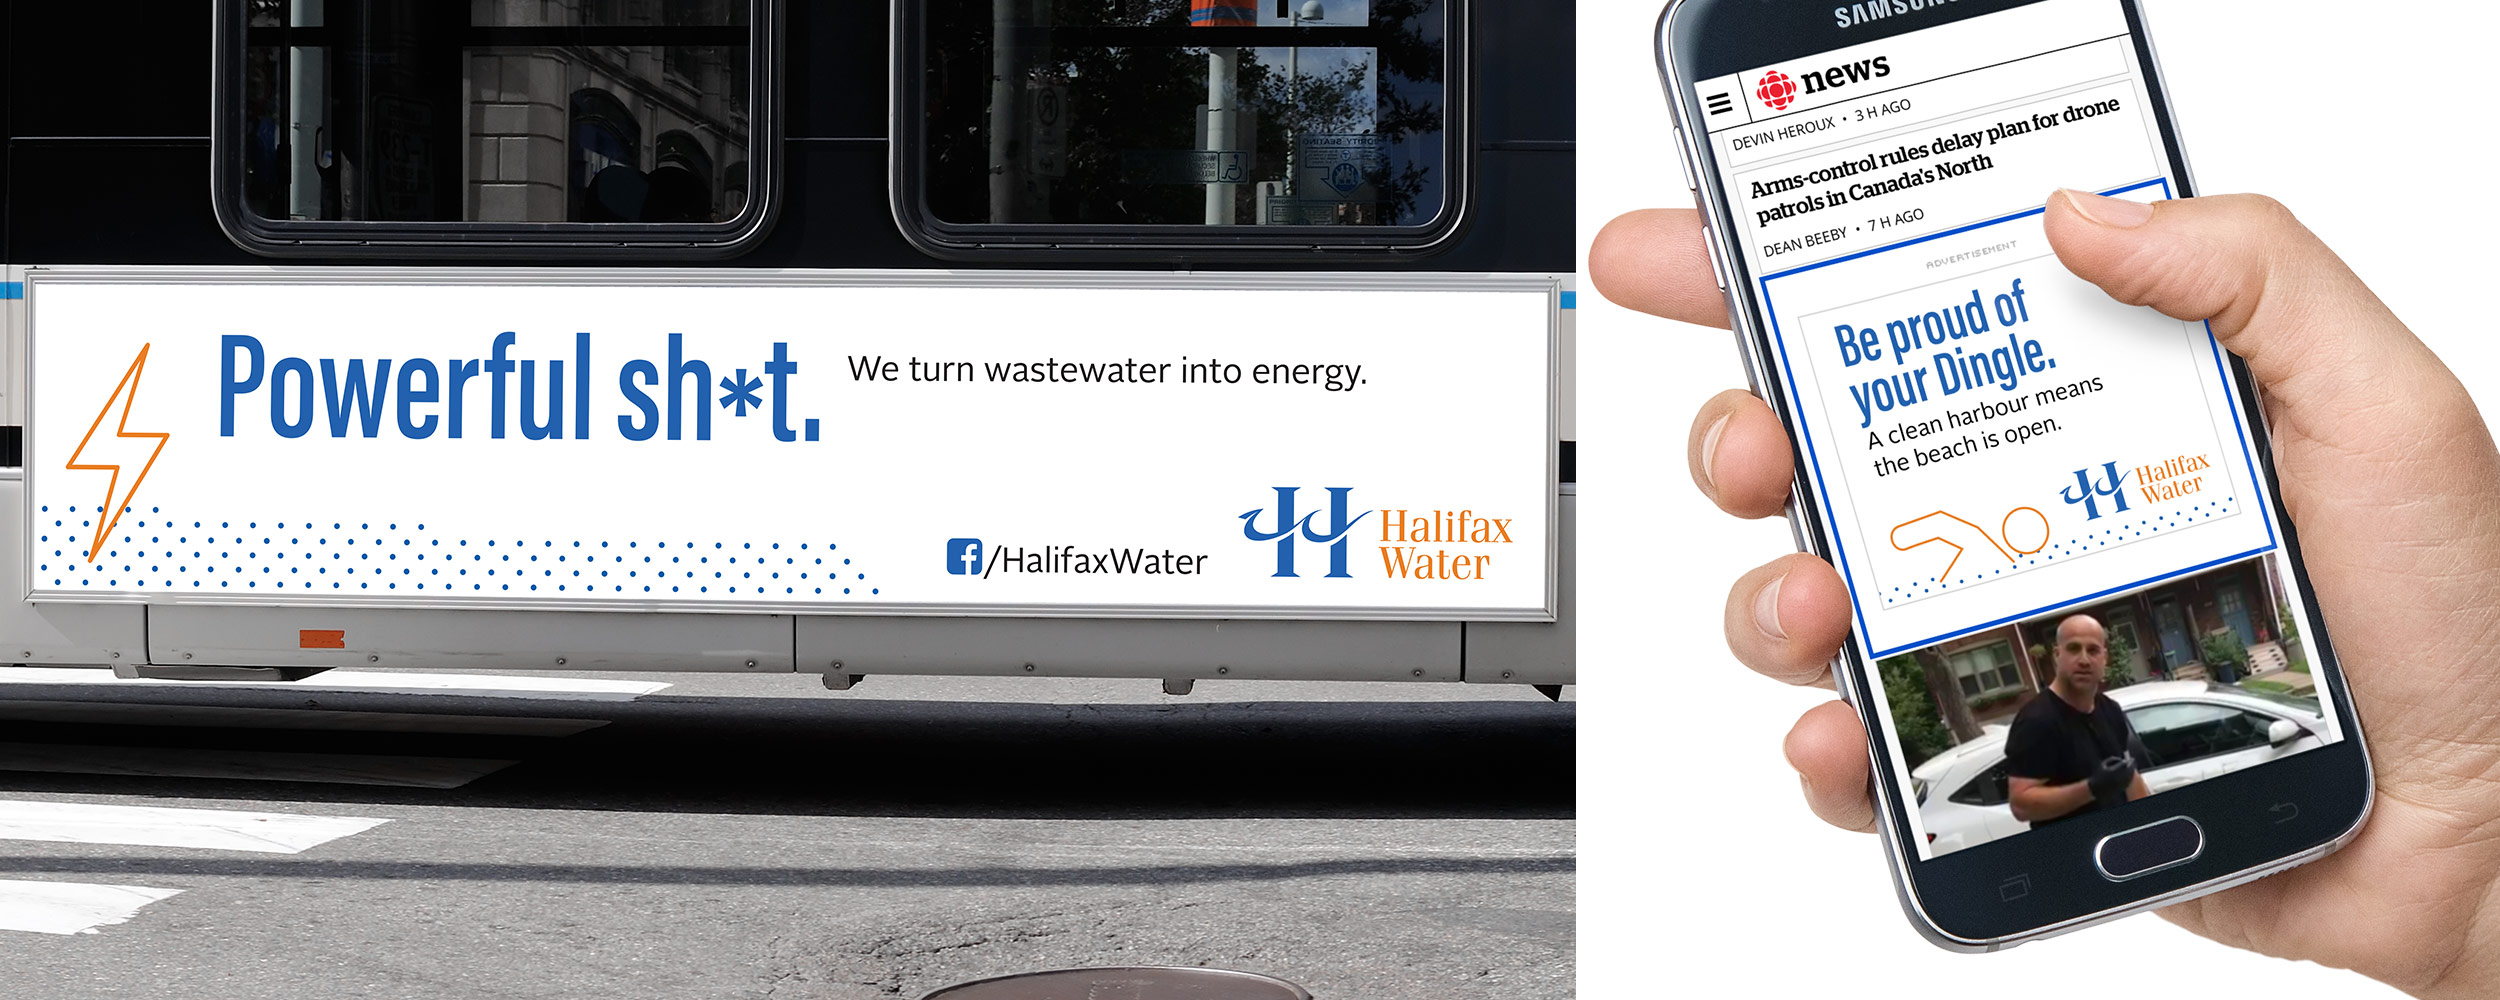 Cell phone and bus advertisements, media buys in Halifax